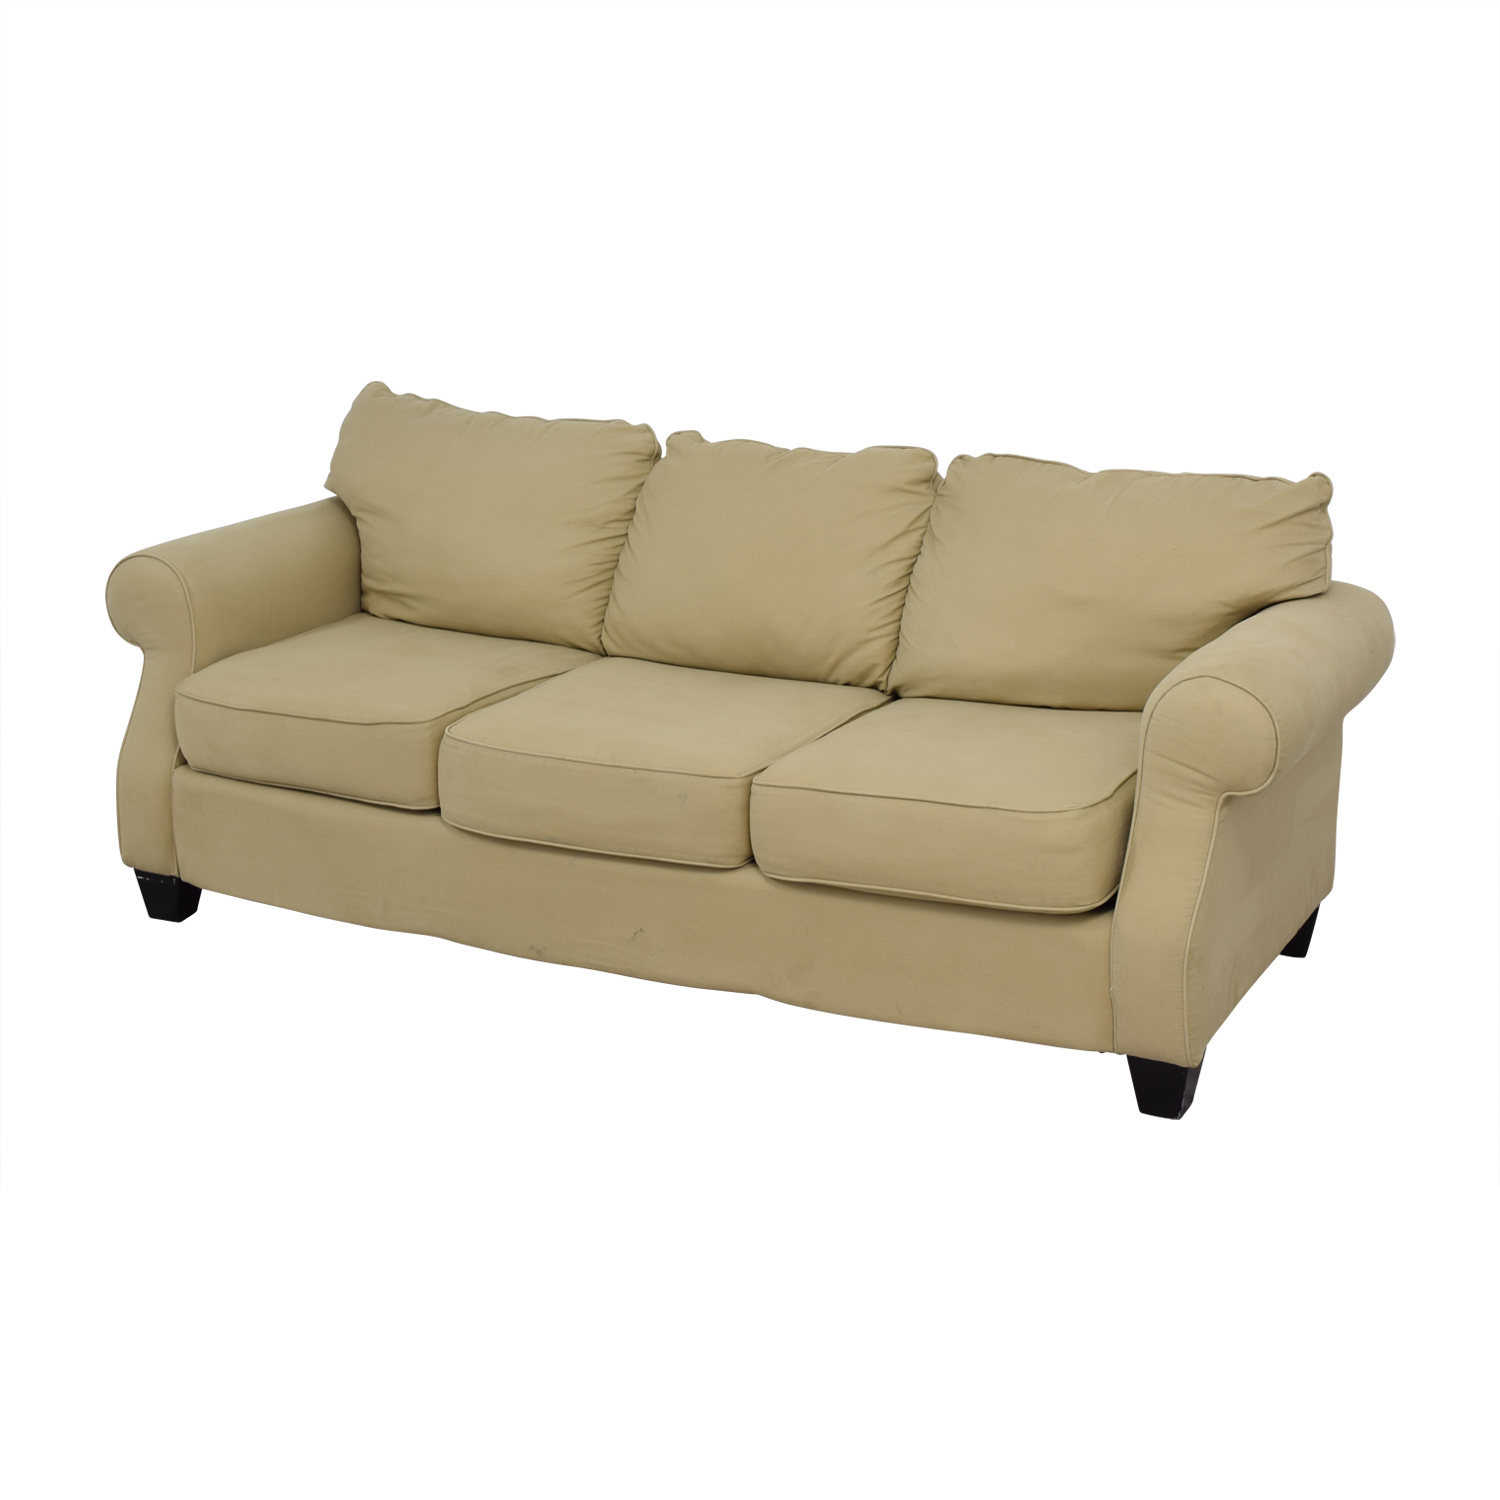 Beige Three-Cushion Curved Arm Sofa price